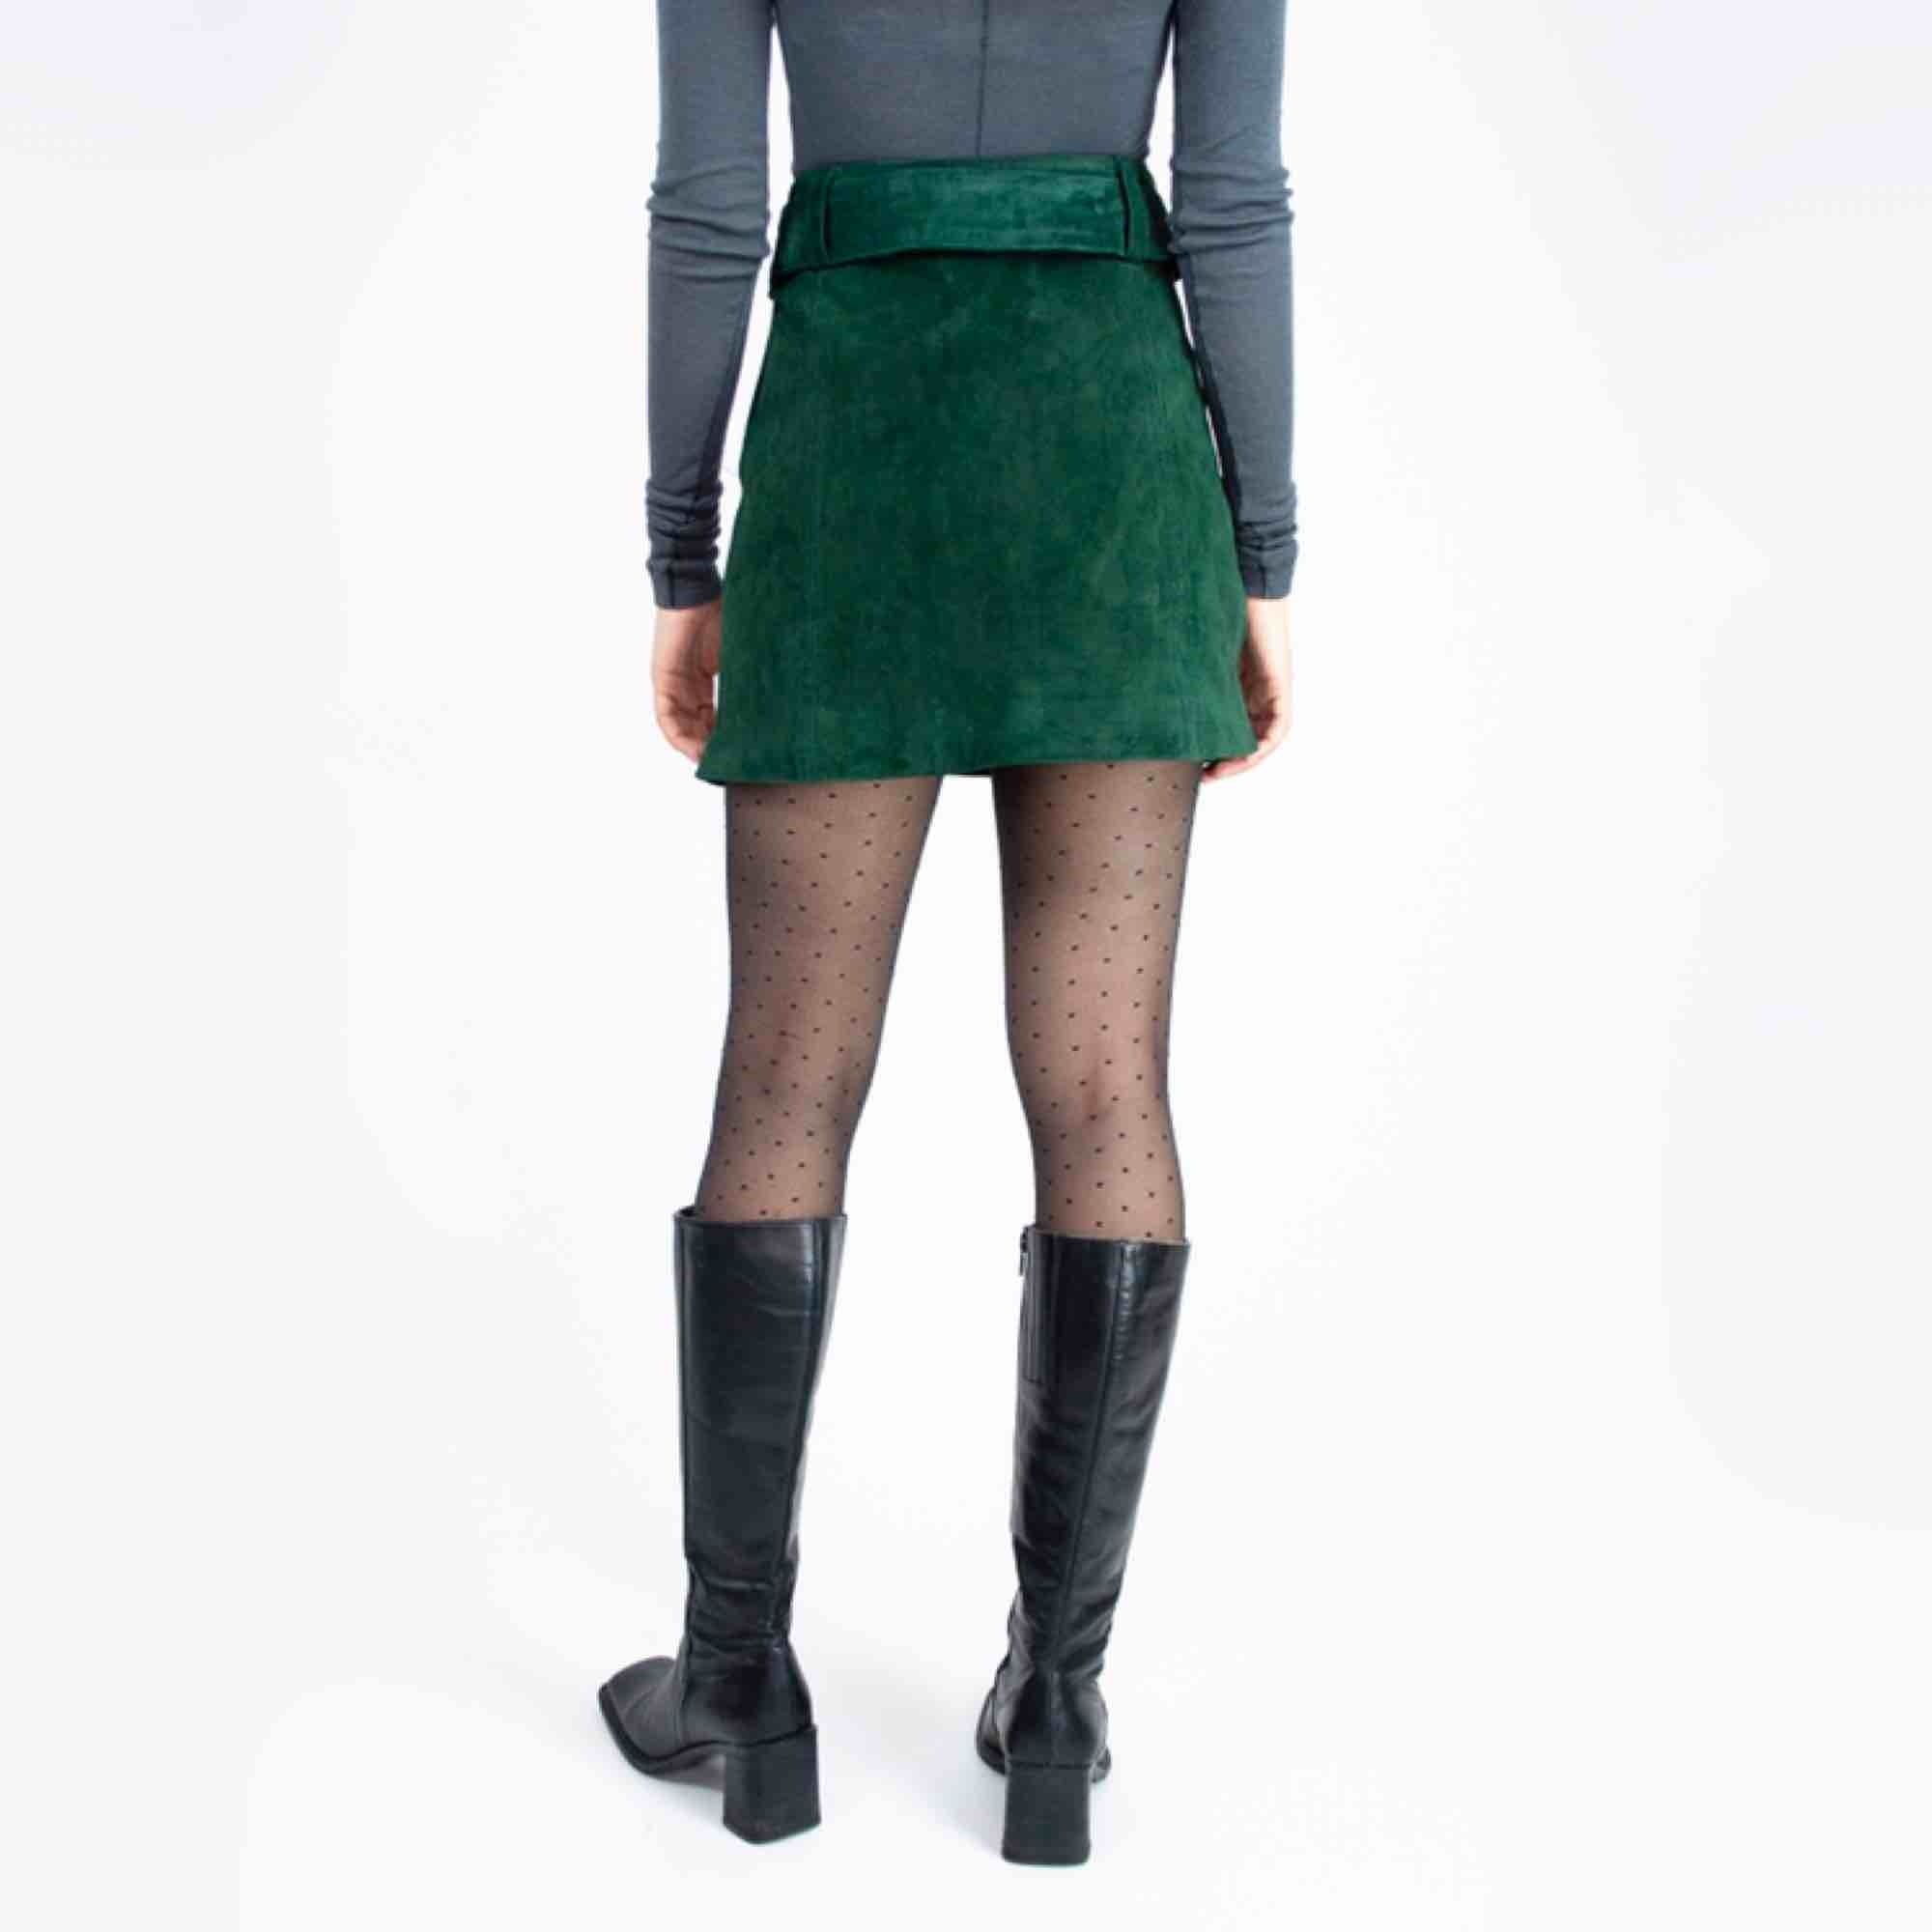 Zara real suede high waist skater mini skirt in emerald green SIZE Label: EUR S, fits best S Model: 165/XS (a bit big on her) Measurements (flat): Length: 39 waist: 36 Free shipping. Read the full description at our website majorunit.com No returns . Kjolar.